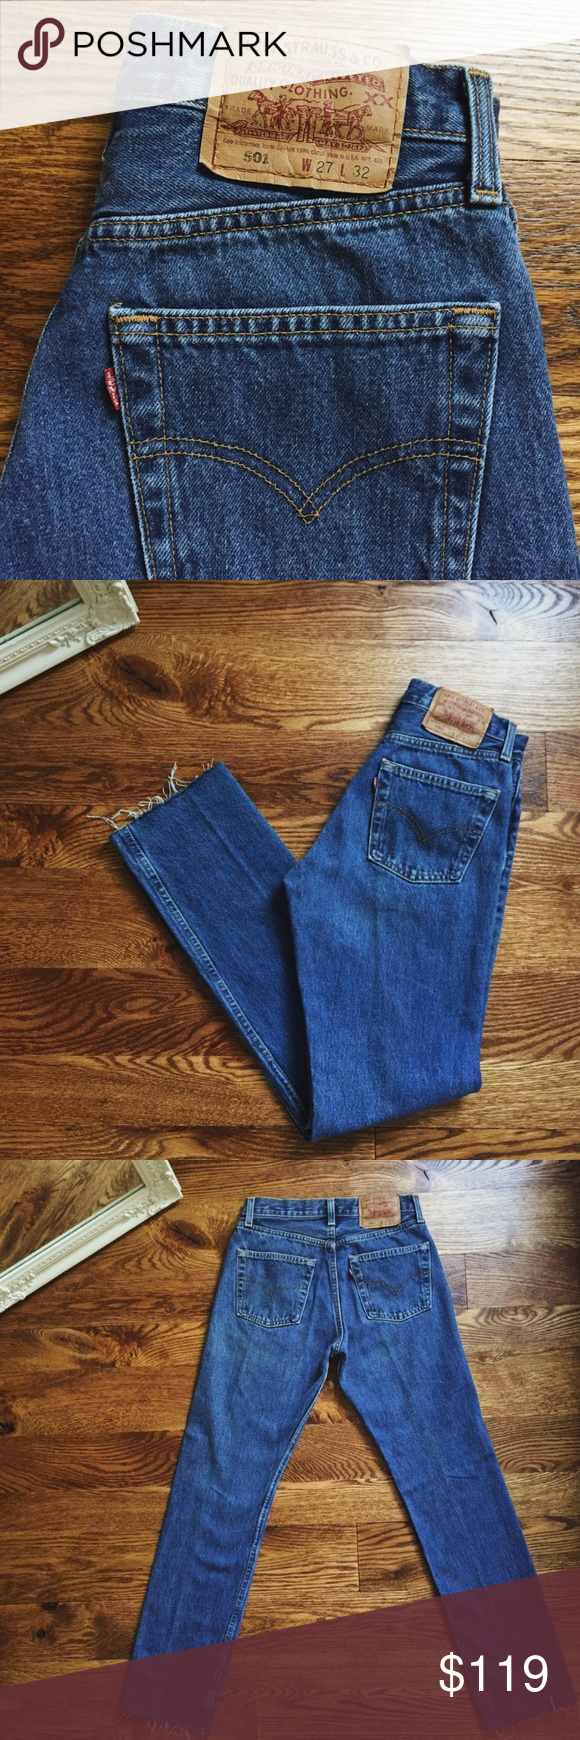 a70a2a8e Vintage 501 high waisted levis with raw hem Beautiful medium blue wash, button  fly. Marked as a size 27, best fit for a size 25. These smaller sizes are  so ...